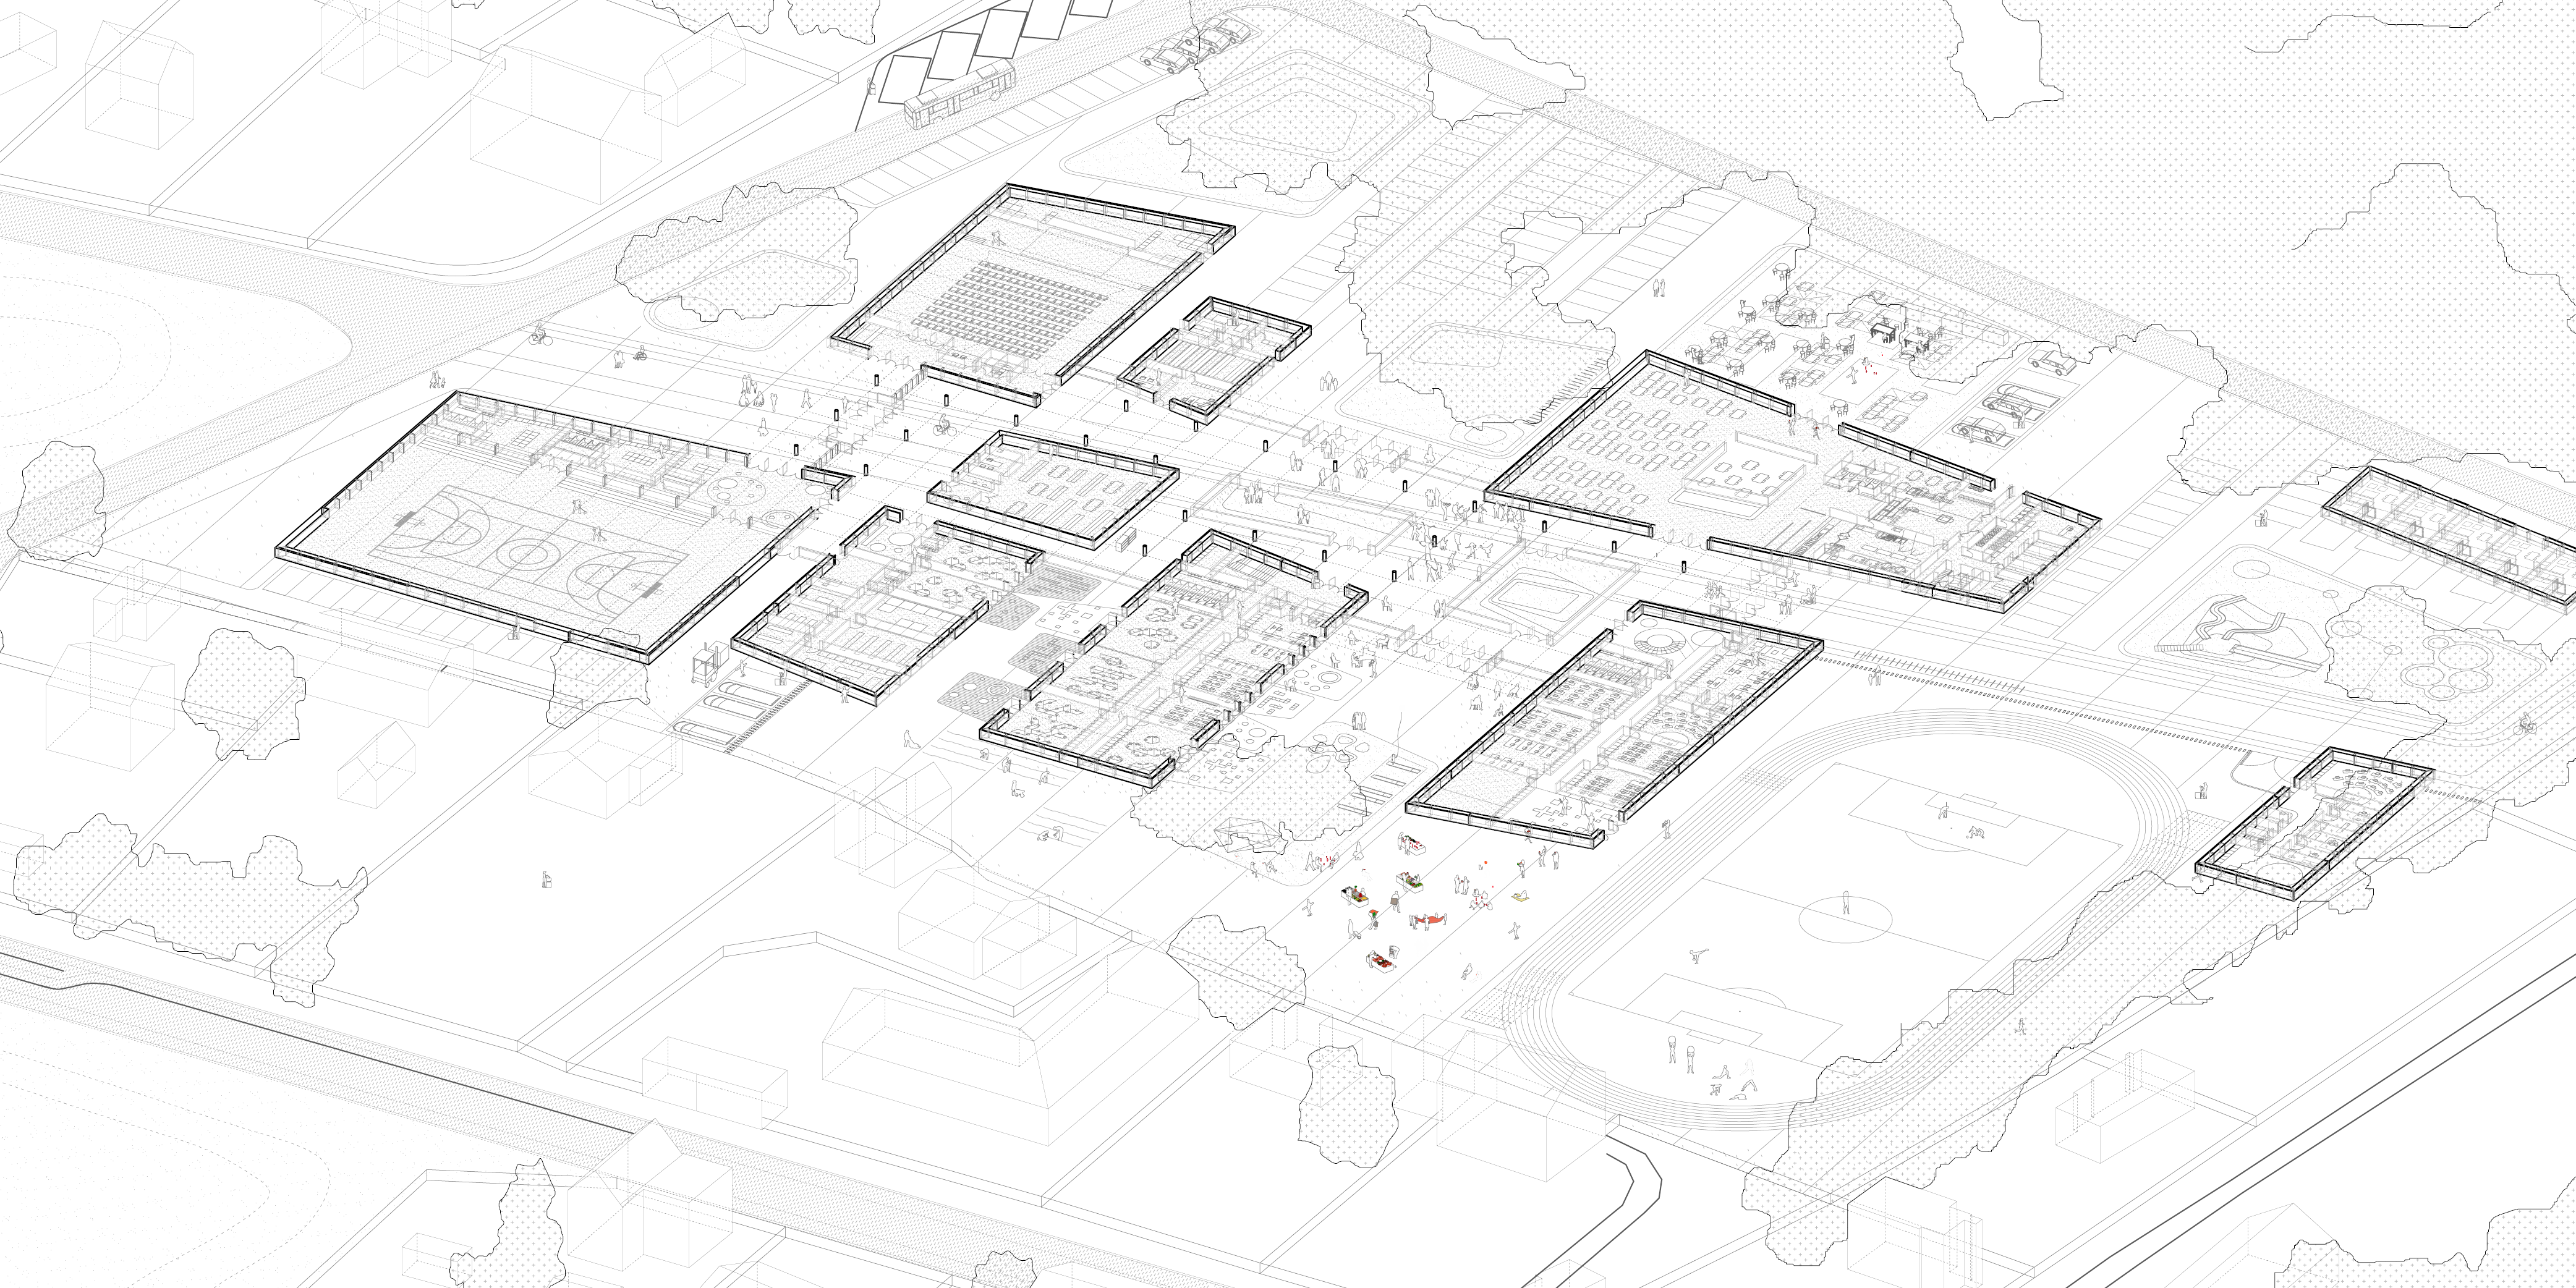 General plan of the school grounds in aerial perspective